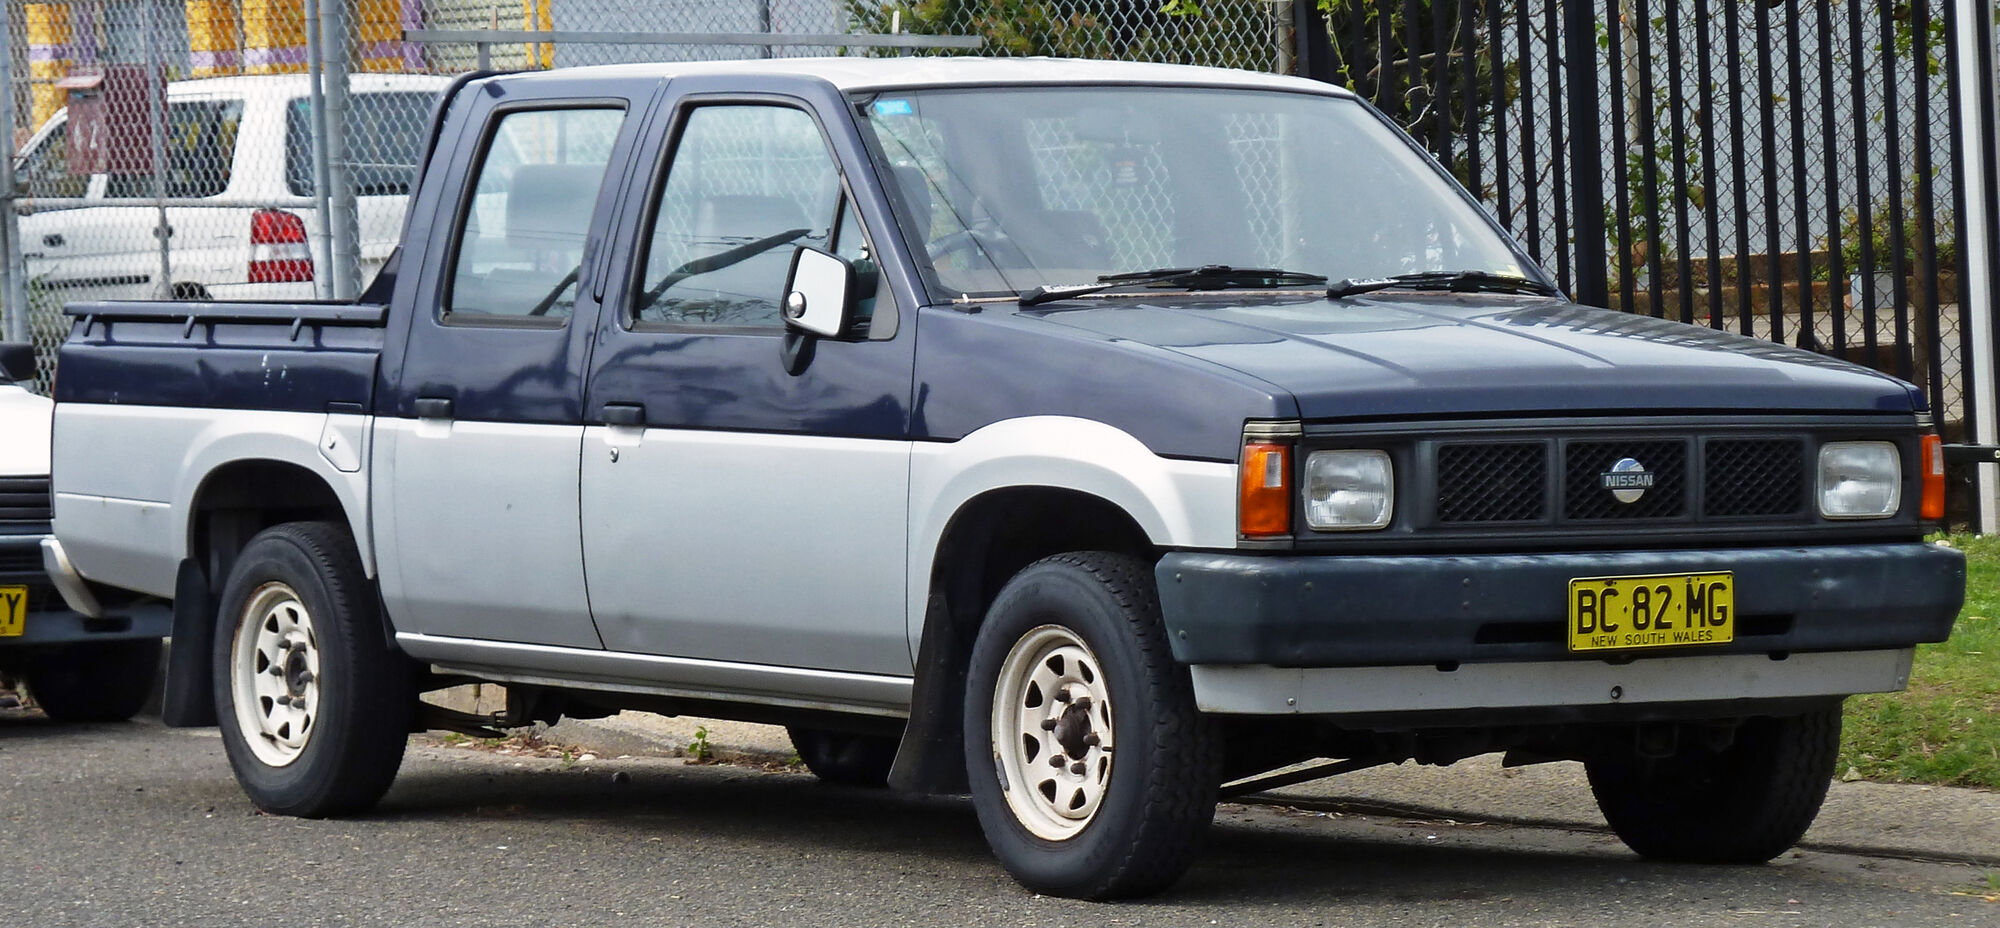 Cb as well Nissan Datsun X Pickup Off Road Action X further Ford Trucks likewise Brake Light Wiring Diagram also Datsun Nissan X King Cab. on 1983 nissan pickup 4x4